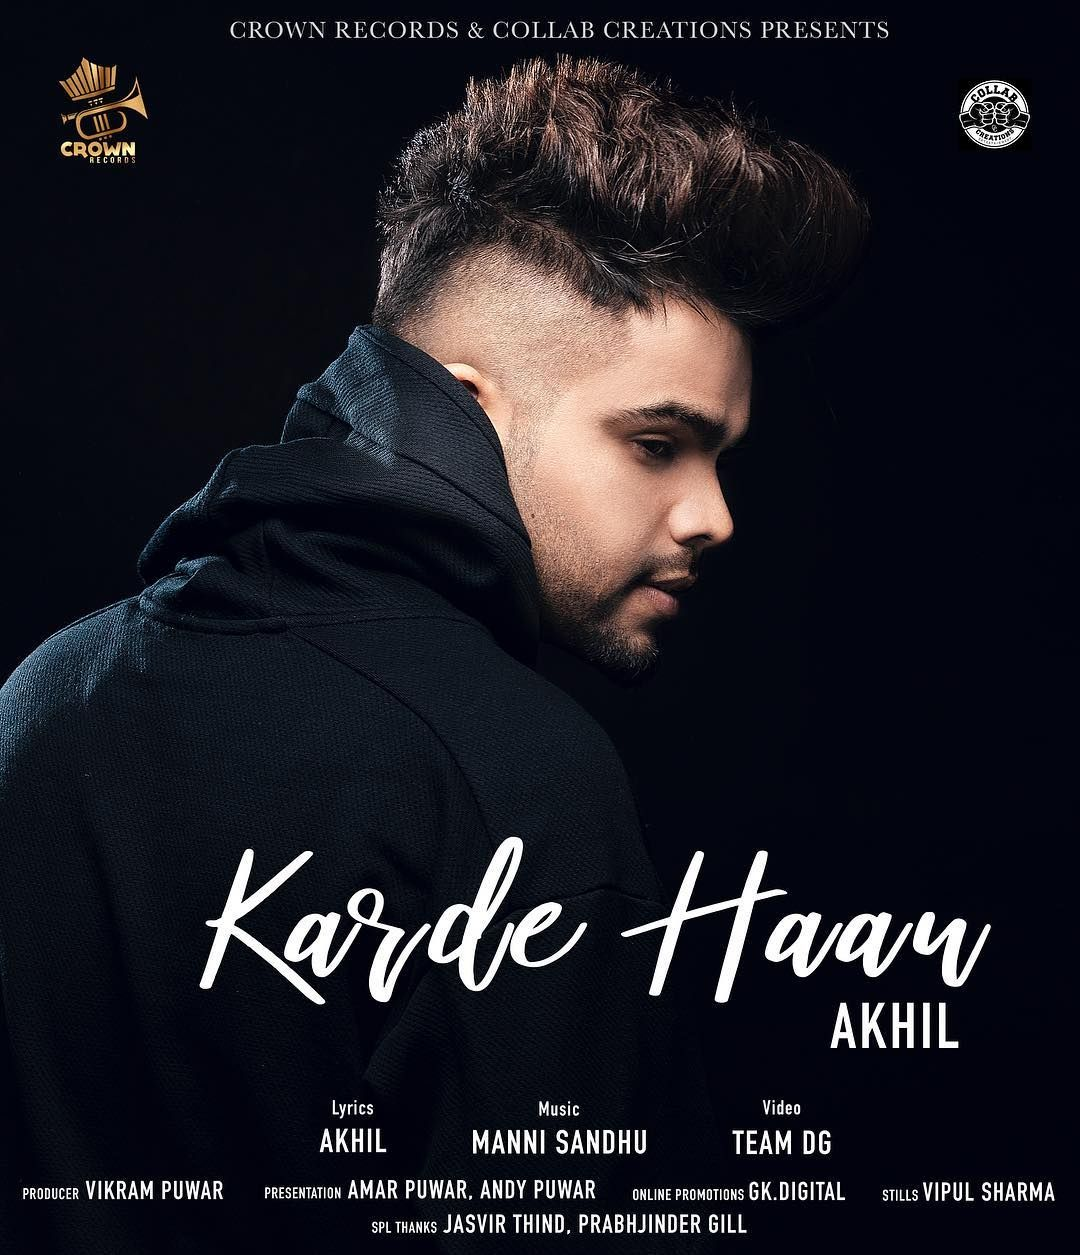 Karde Haan Bus Kuch He Dina Vch Tuhada Ho Jana Thank You So Much For Always Loving My Music Singer Lyric Mp3 Song Download New Song Download Mp3 Song